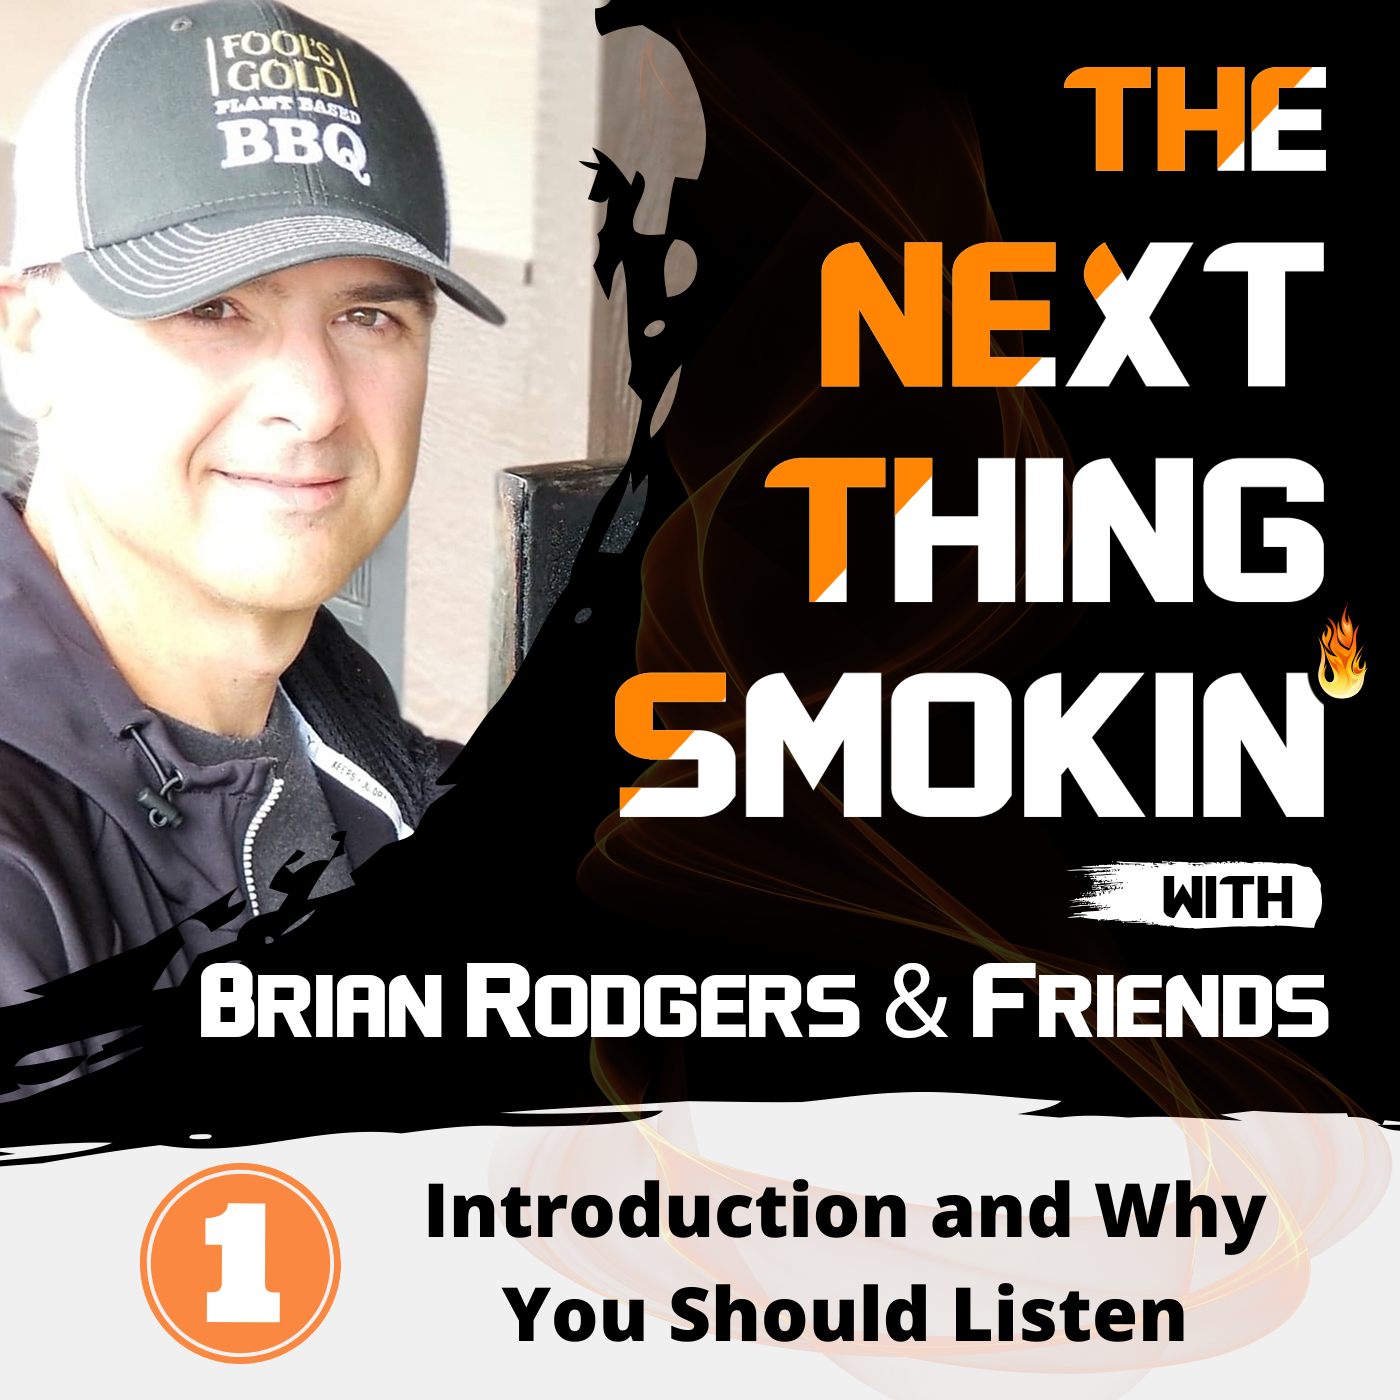 Introduction & Why You Should Listen to The Next Thing Smokin'